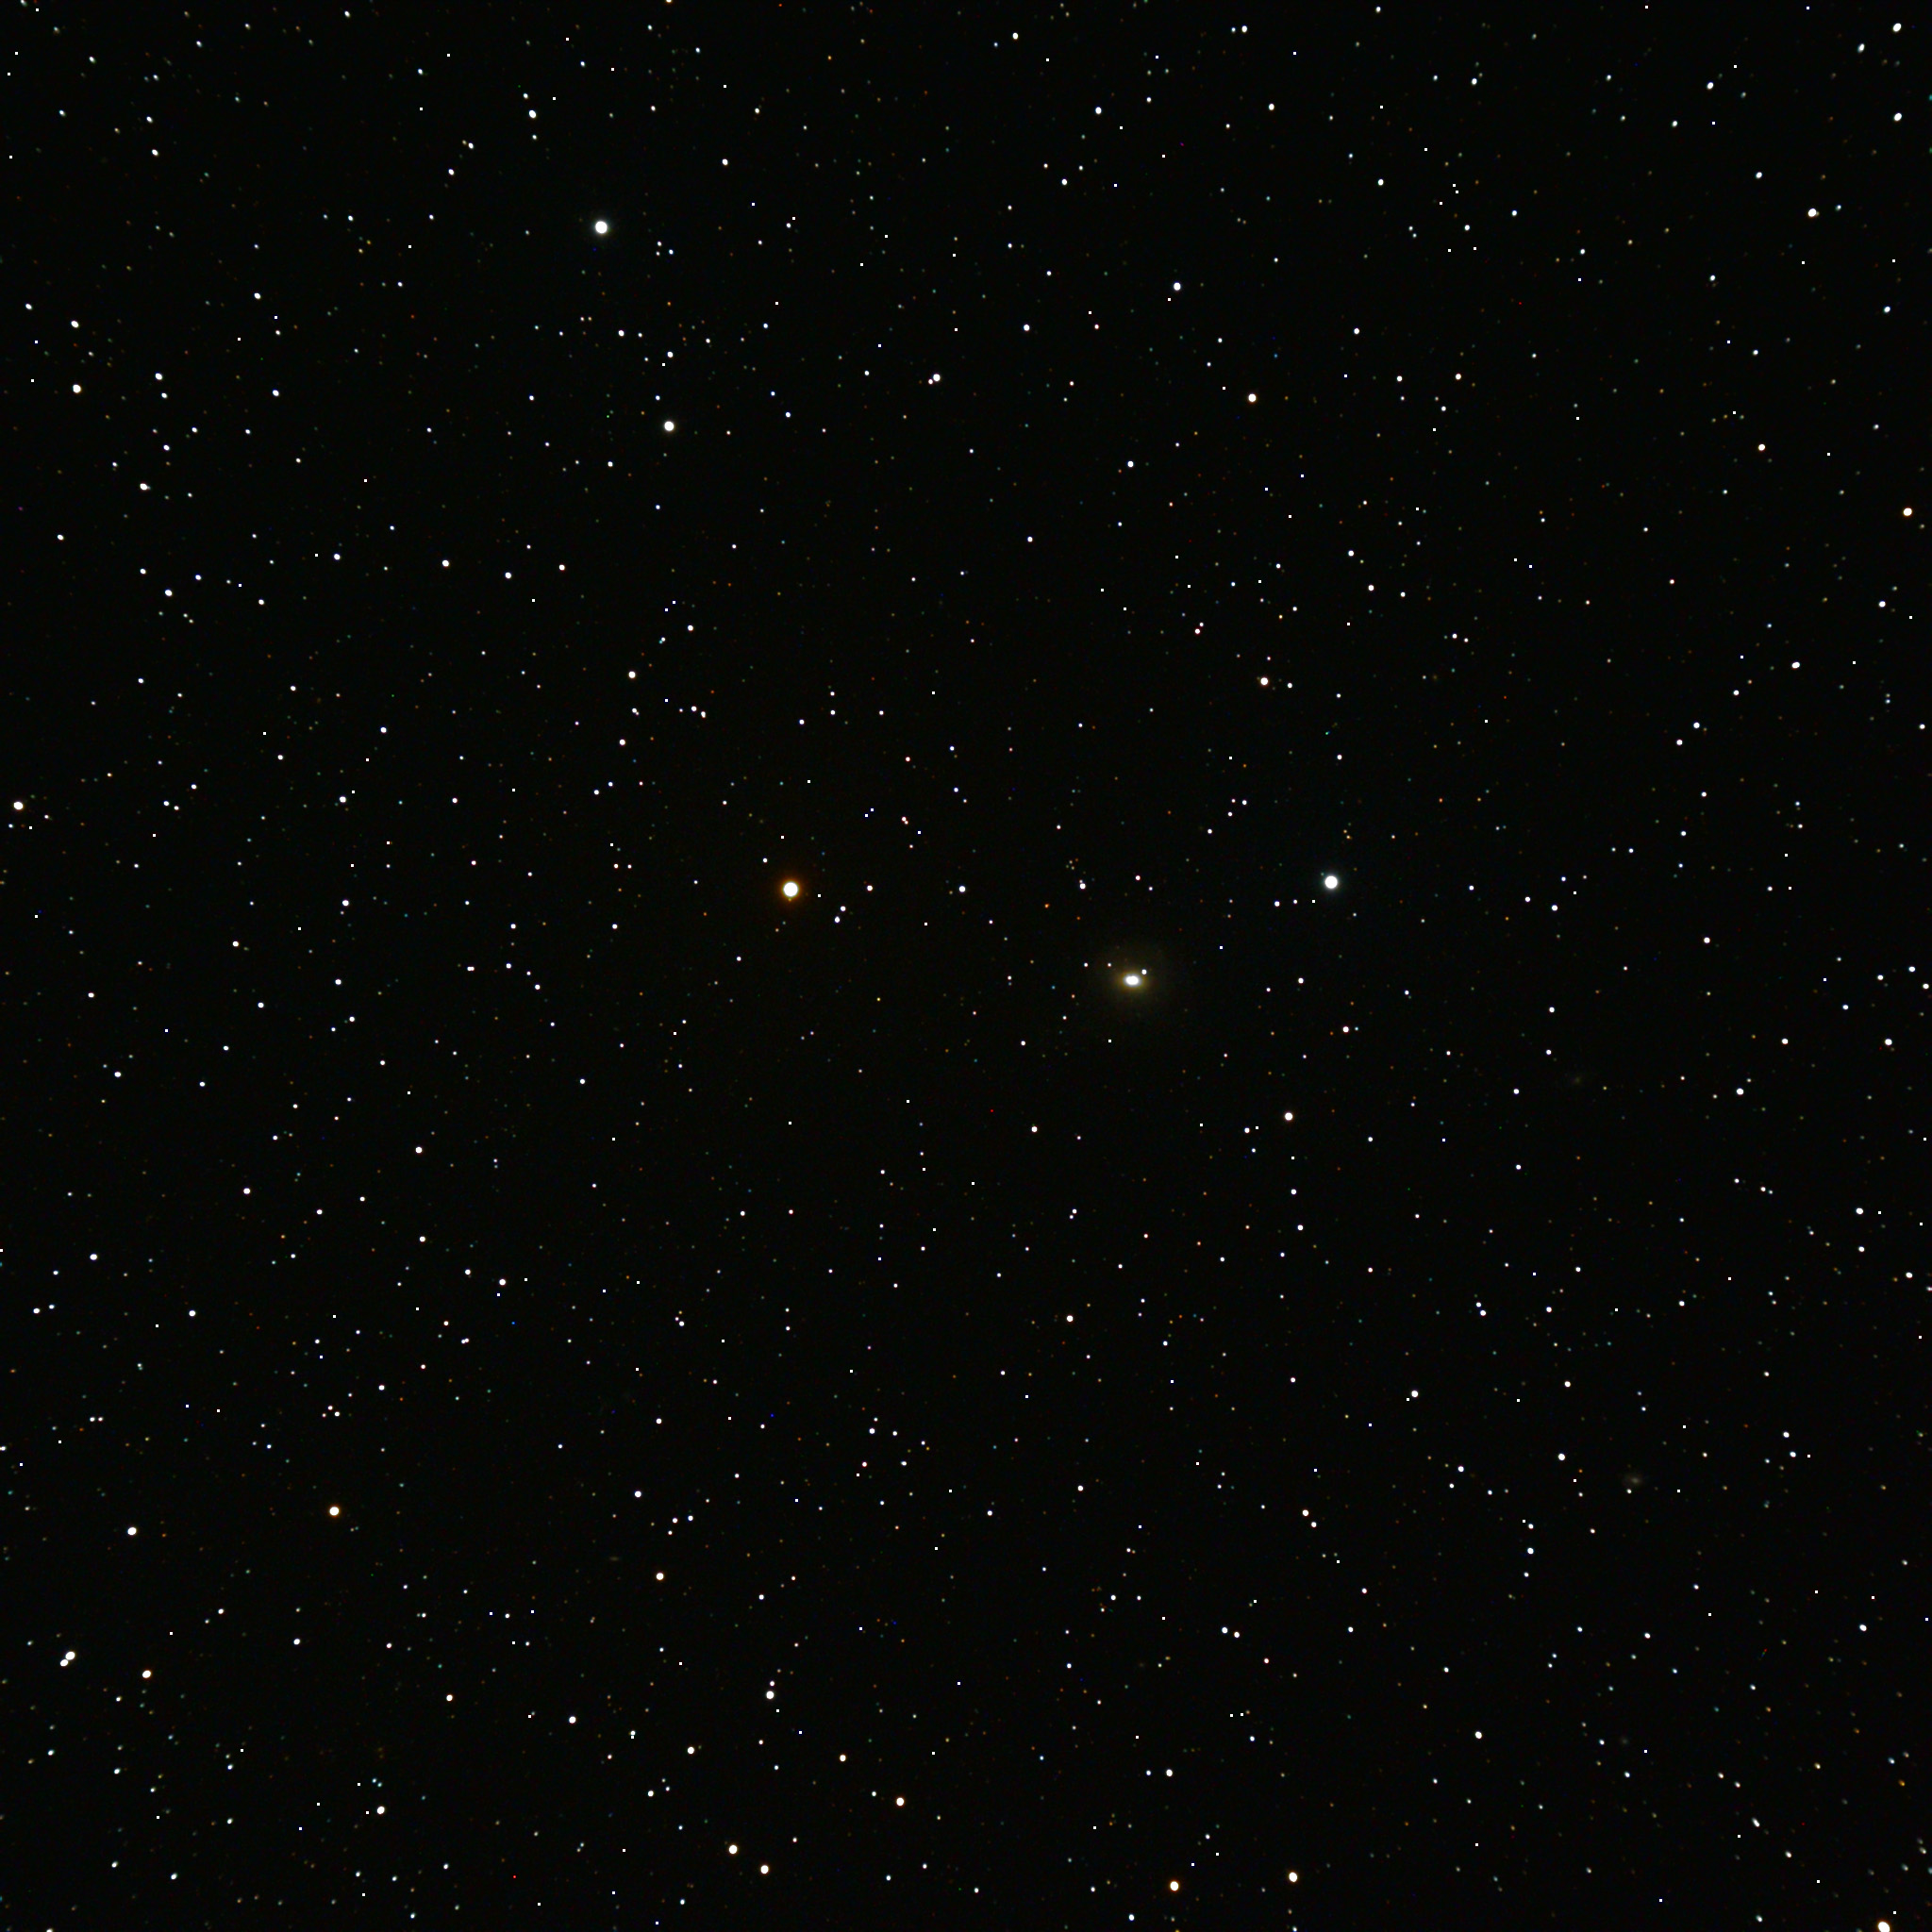 ngc2655.jpg - Just to the right of center is galaxy NGC2655 with a recently discovered supernova.